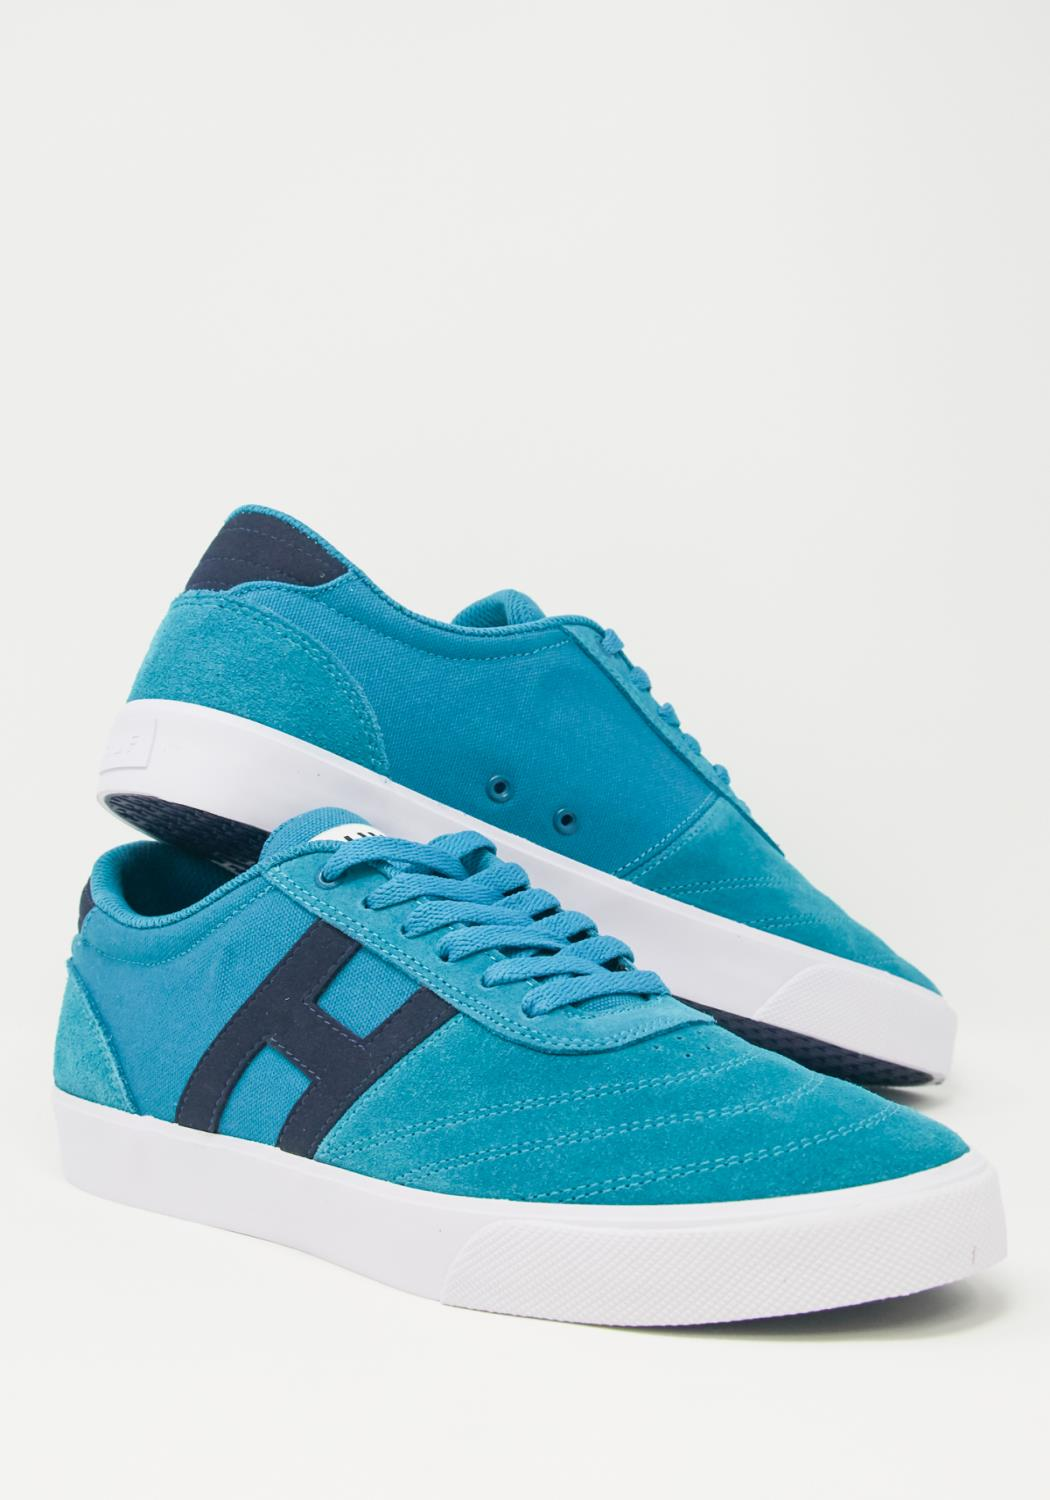 HUF - Galaxy Shoes